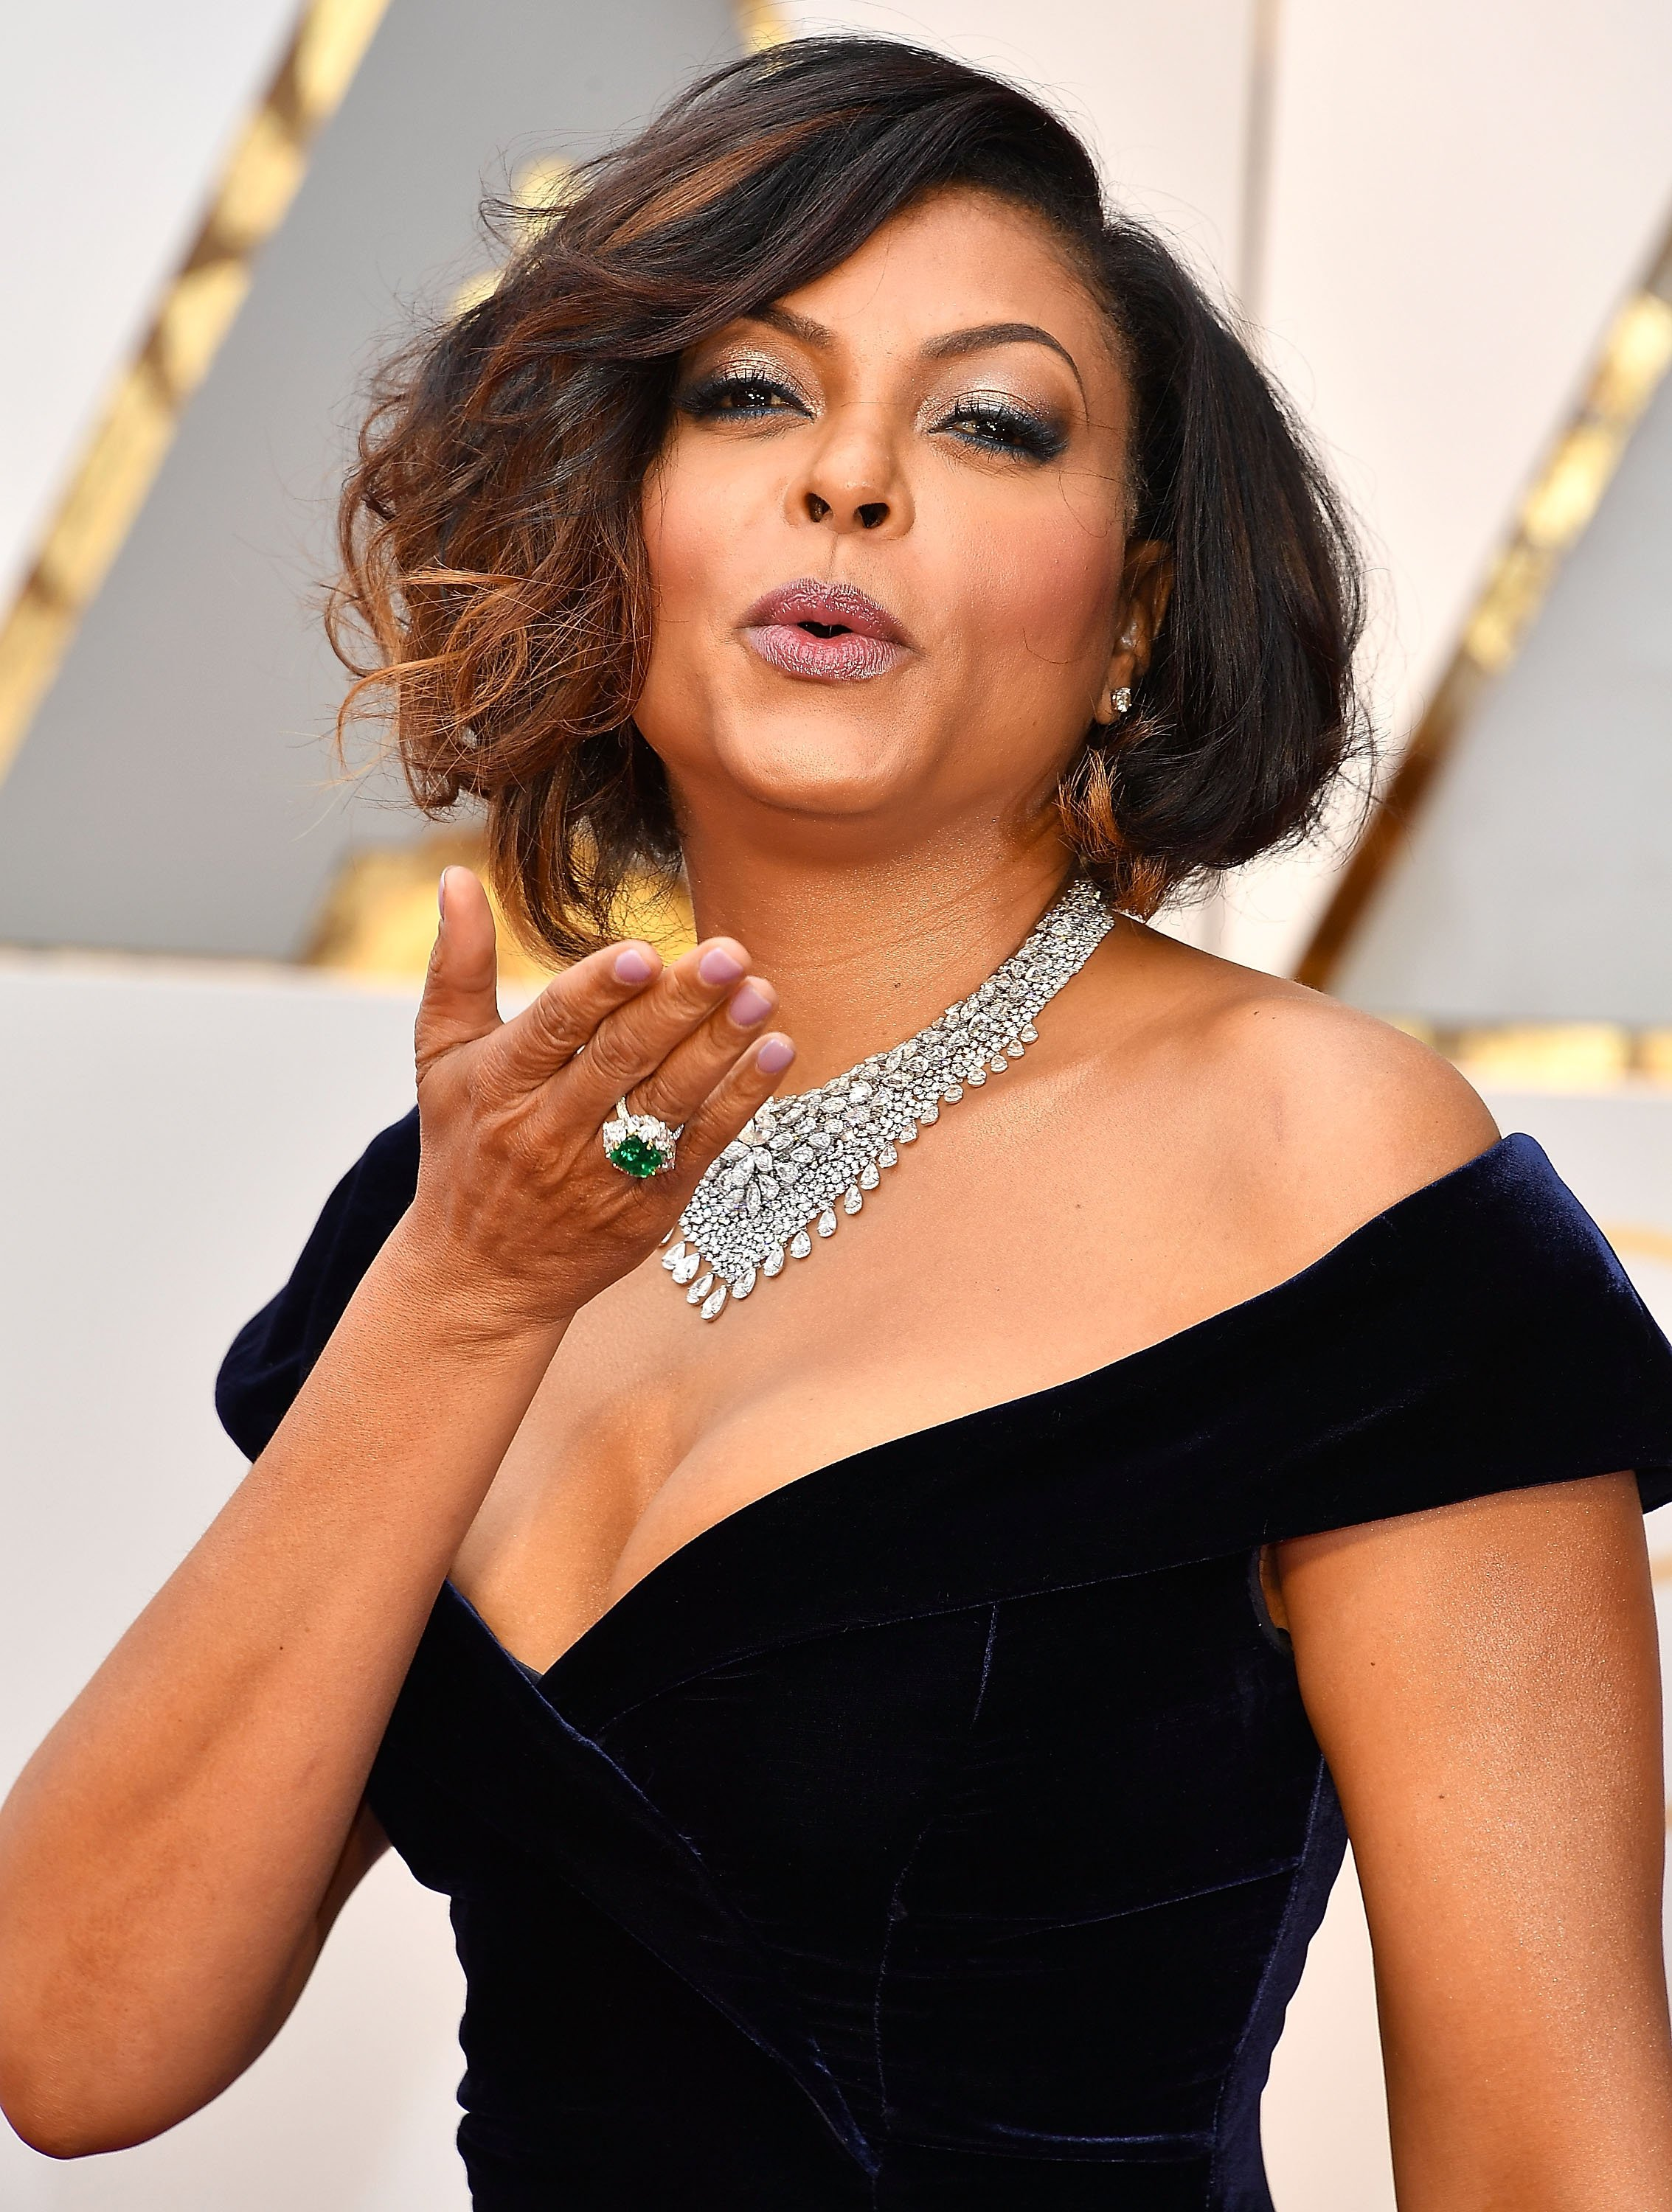 Taraji P. Henson at the 89th Annual Academy Awards on February 26, 2017 in Hollywood, California. | Source: Getty Images